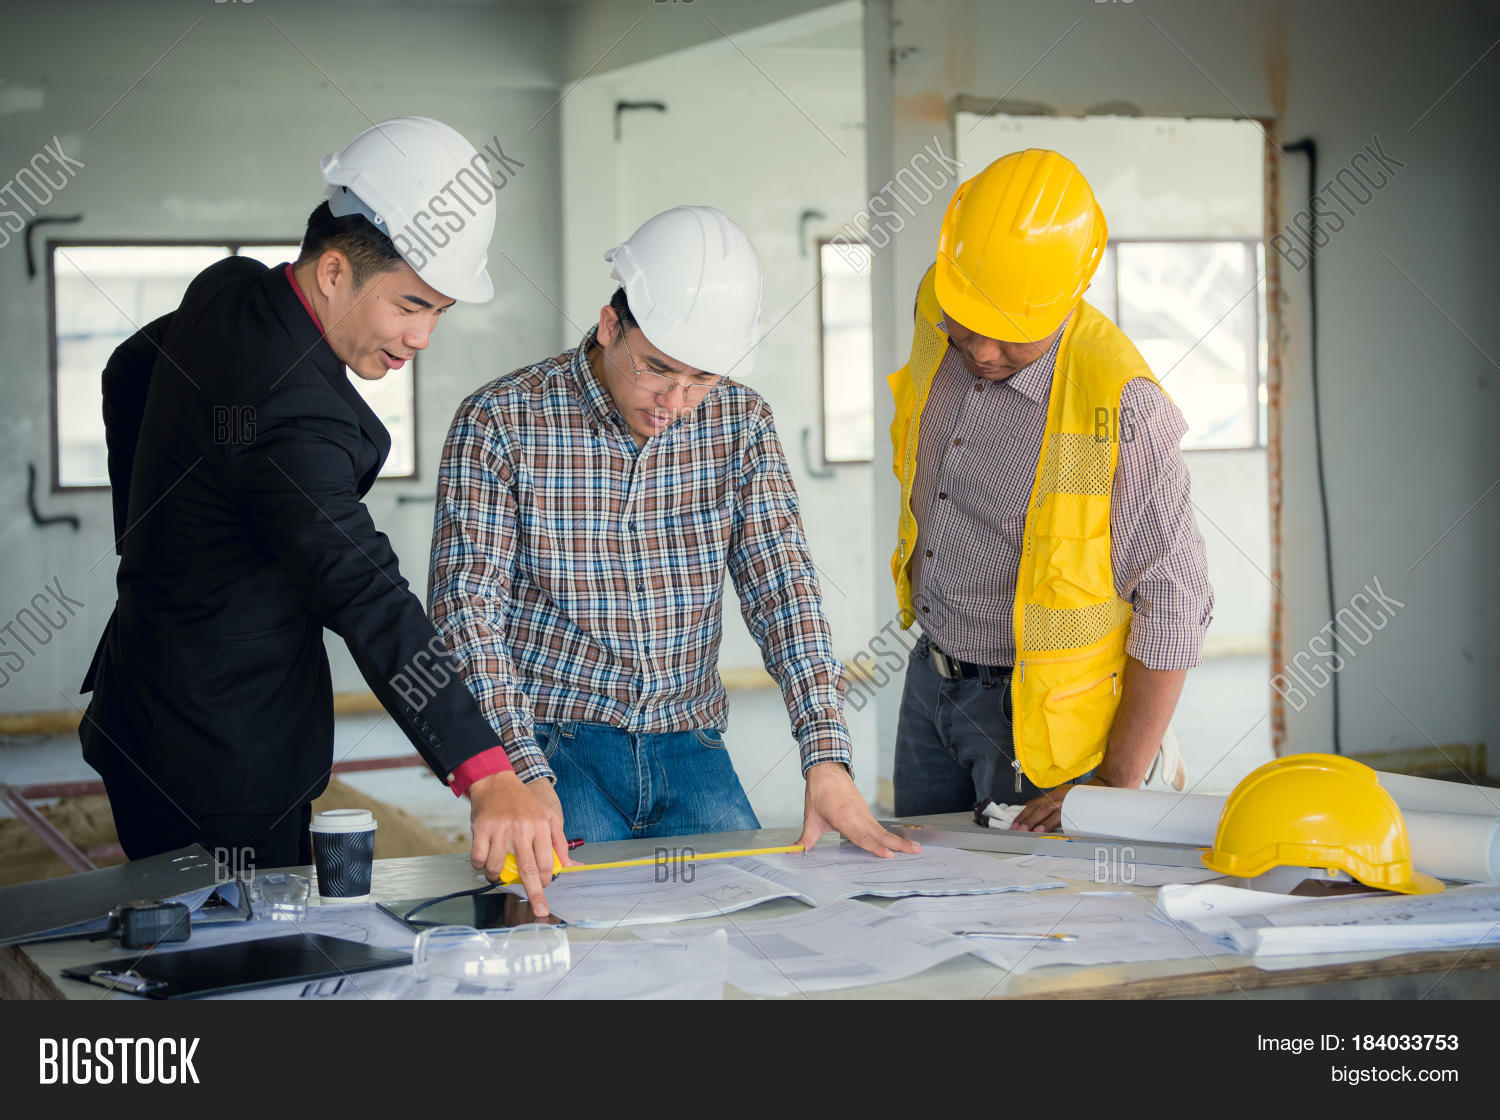 Management consulting engineers image photo bigstock management consulting and engineers and foreman working with blueprint and drawing on work table for malvernweather Choice Image